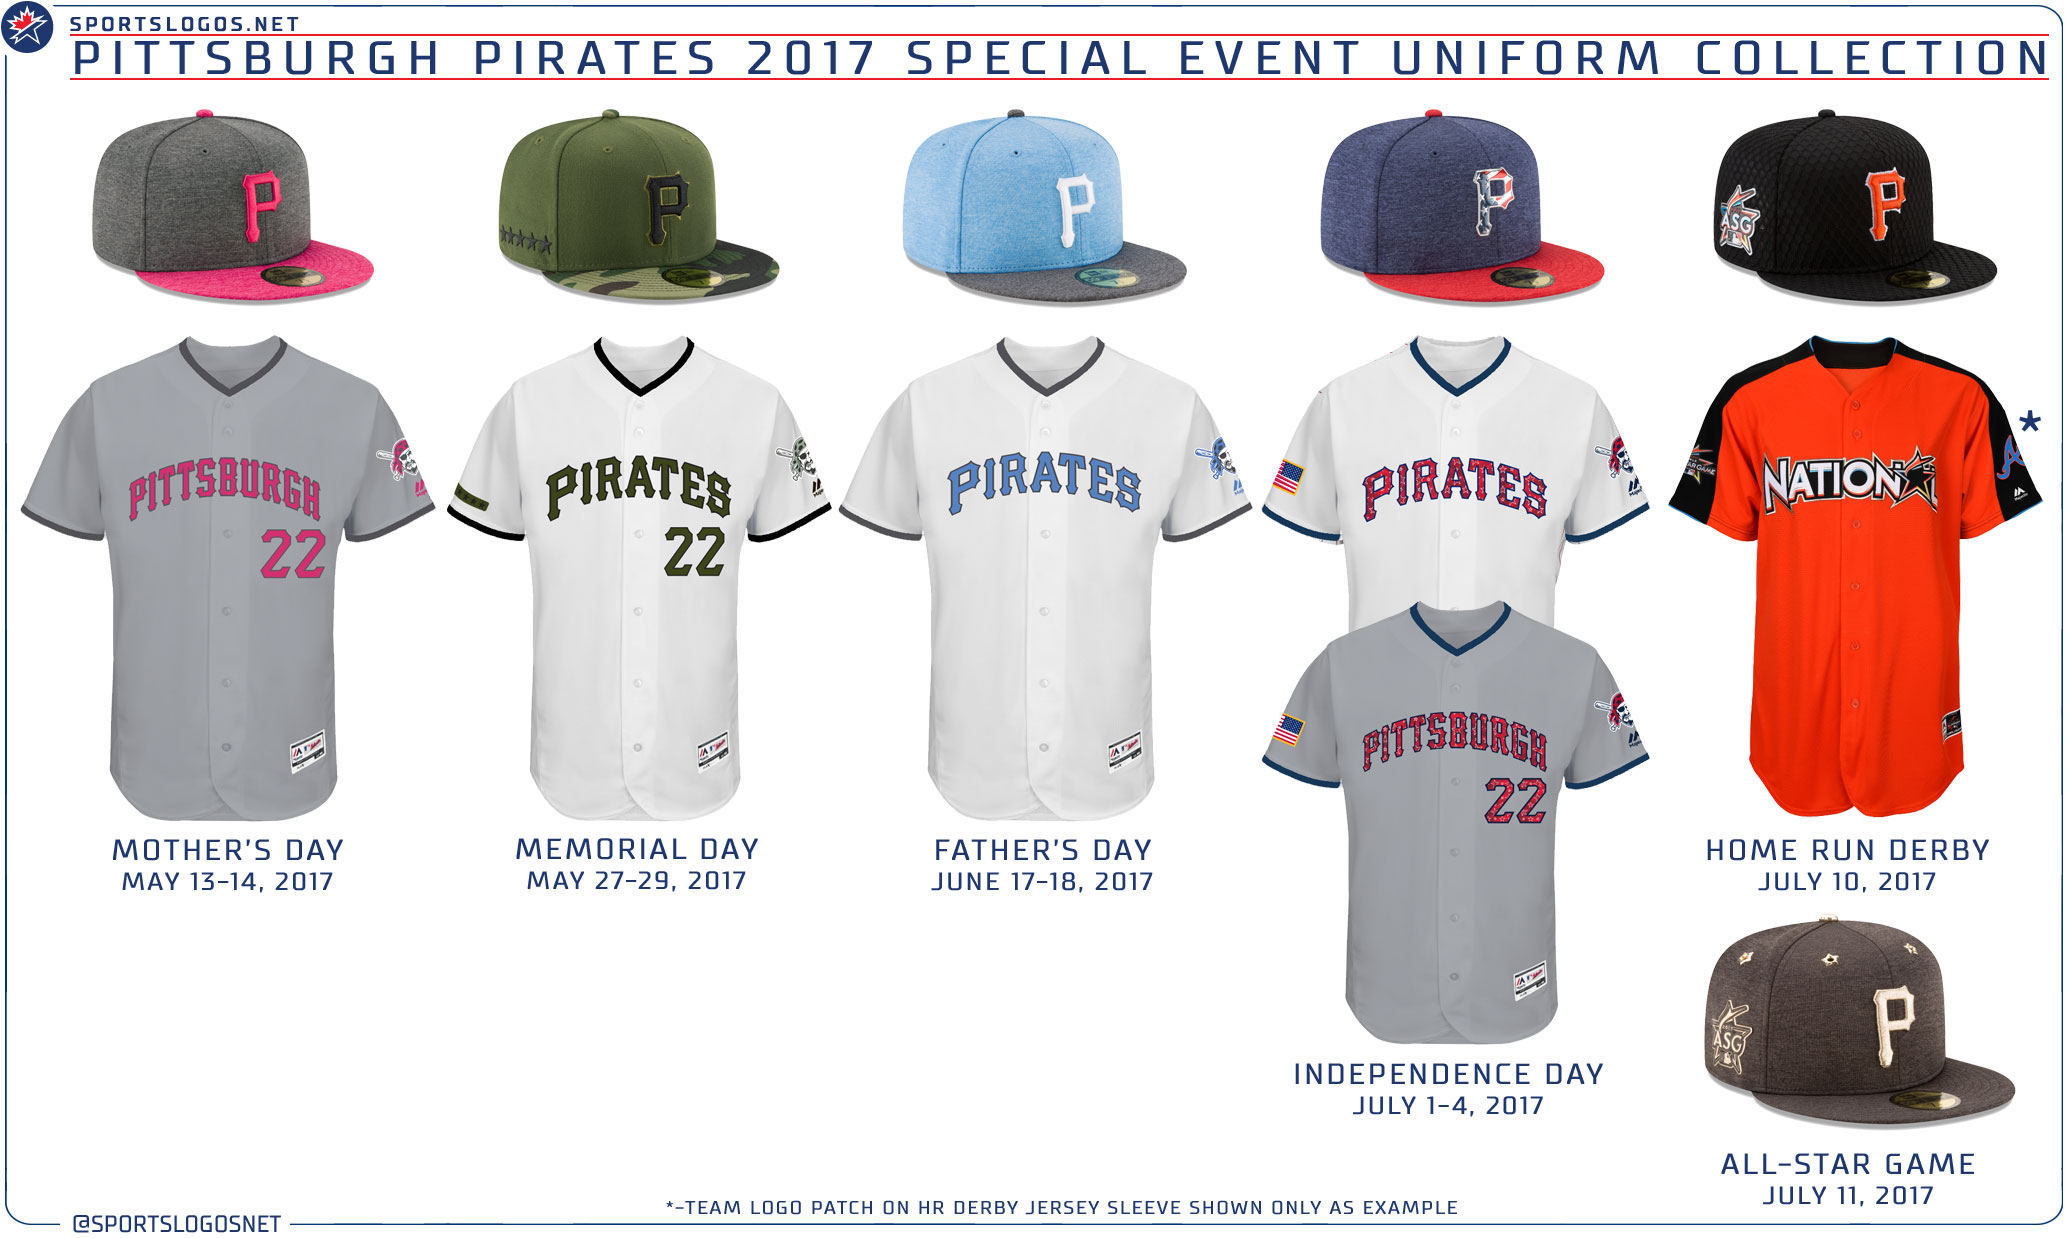 b6a4c63c The Pirates wil have five additional looks during regular-season games. (MLB /@sportslogosnet)